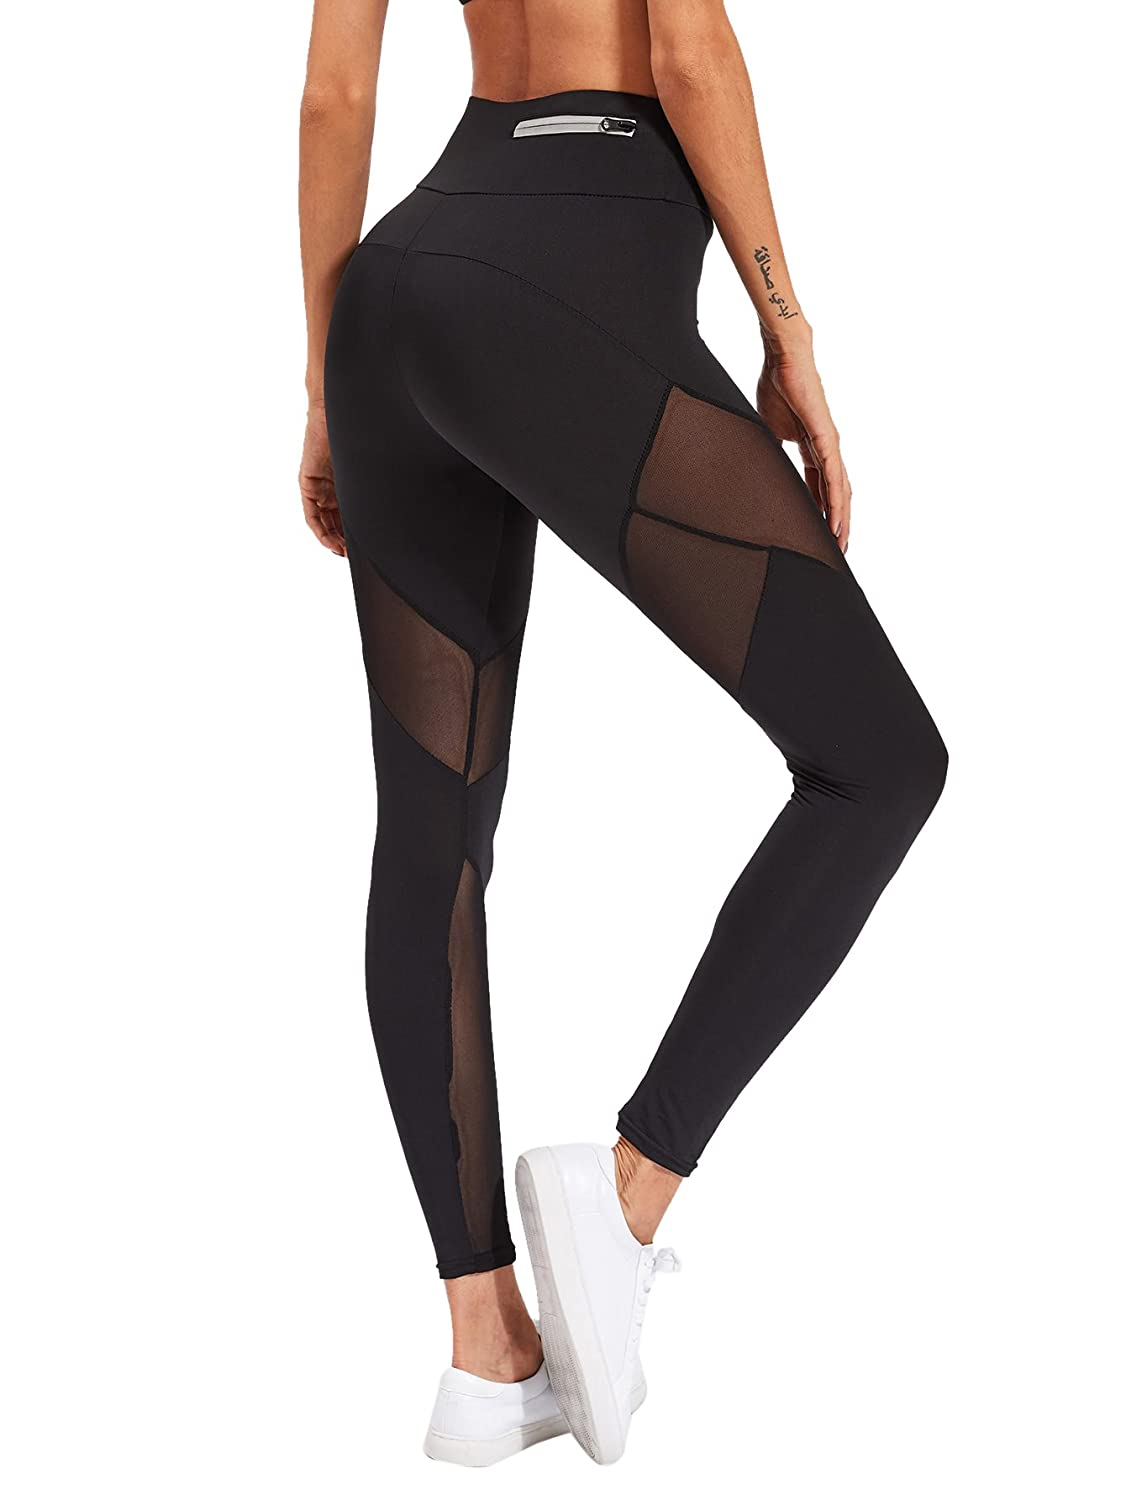 02261715b7a65 SweatyRocks Women's Stretchy Skinny Sheer Mesh Insert Workout Leggings Yoga  Tights at Amazon Women's Clothing store: